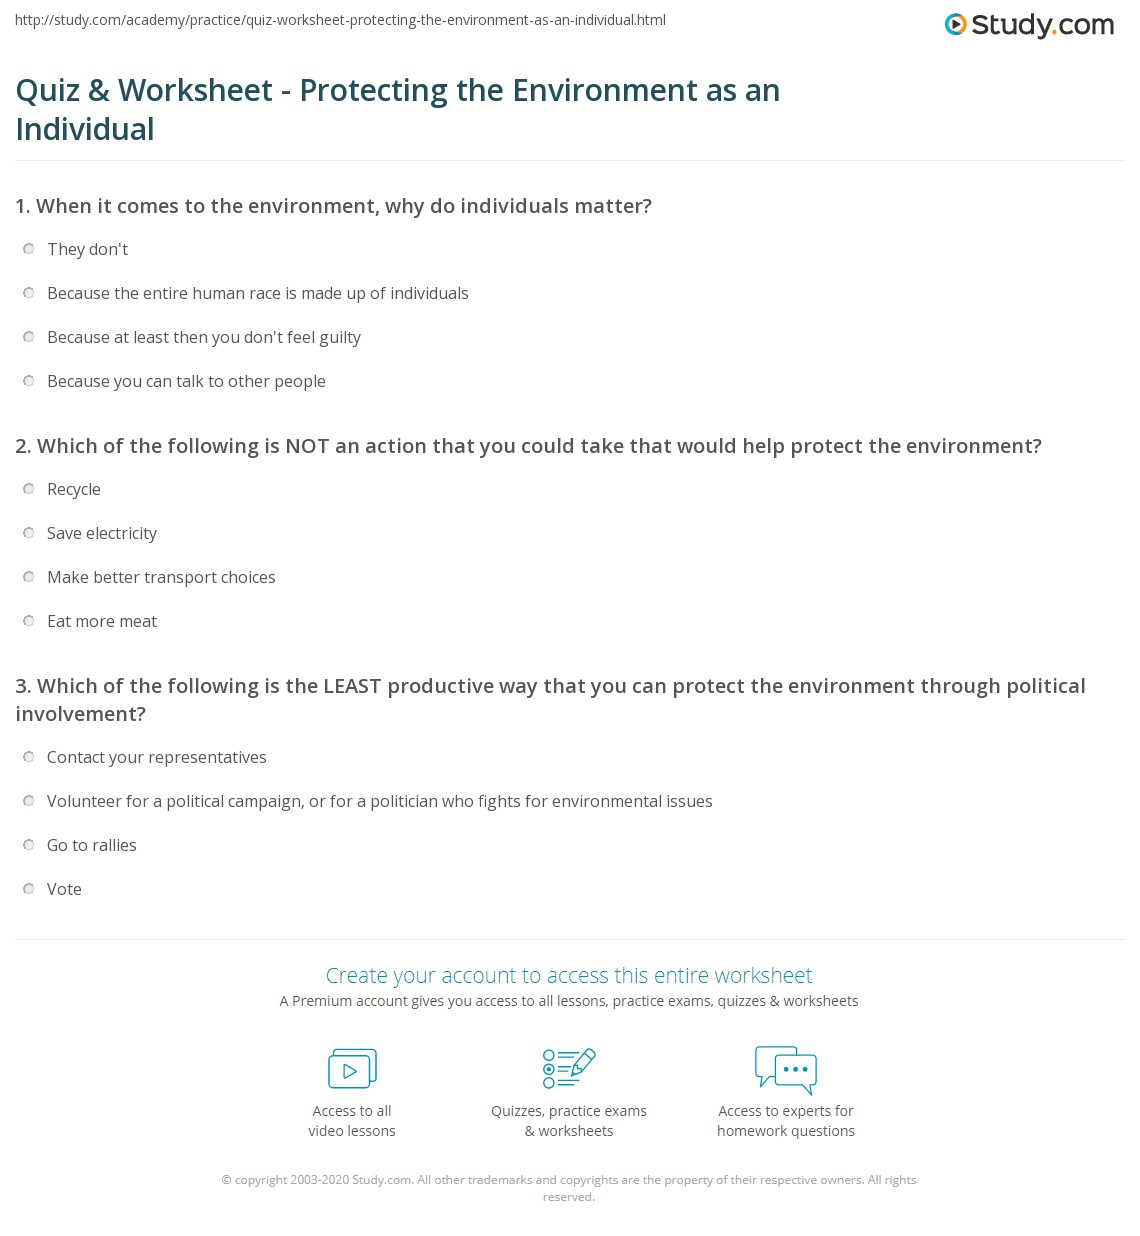 Quiz & Worksheet - Protecting the Environment as an